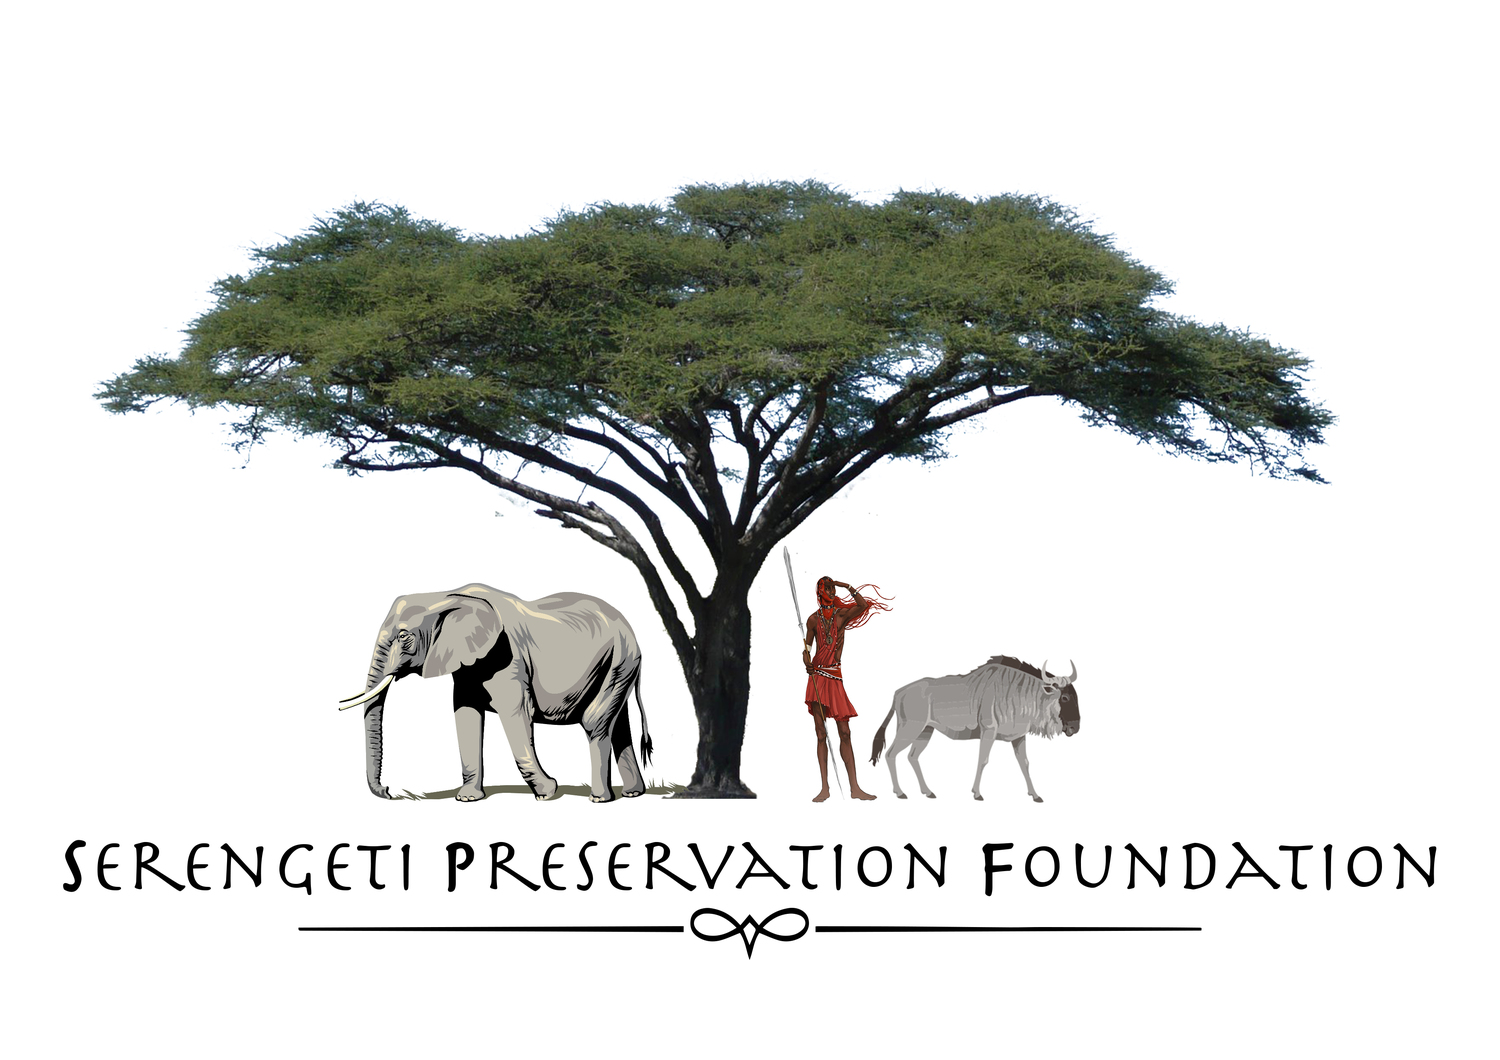 Serengeti Preservation Foundation